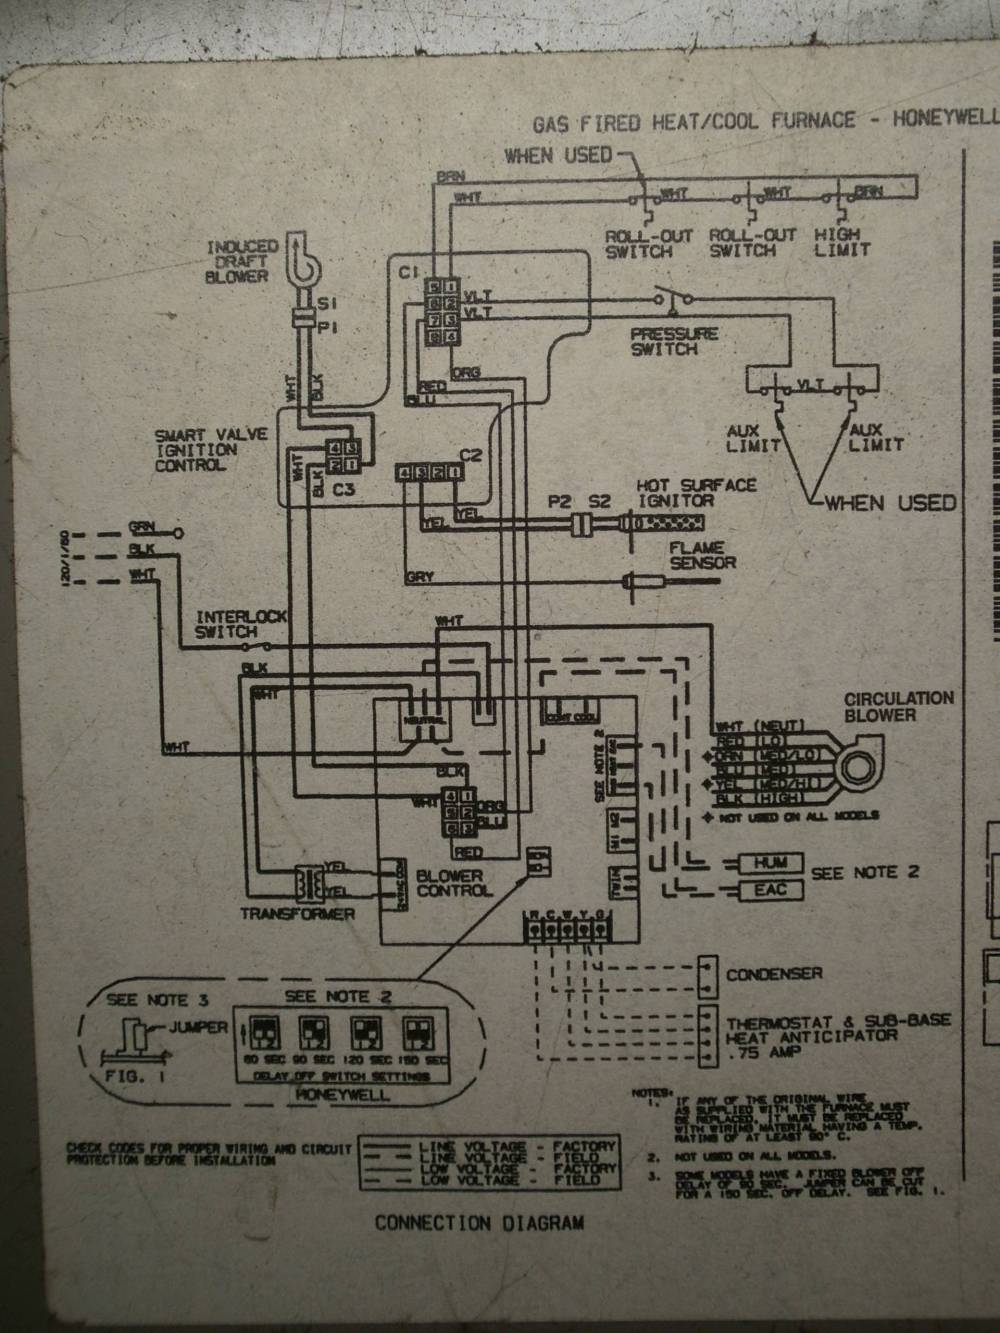 medium resolution of wiring diagram also troubleshooting hvac schematic likewise hvac troubleshooting hvac schematic